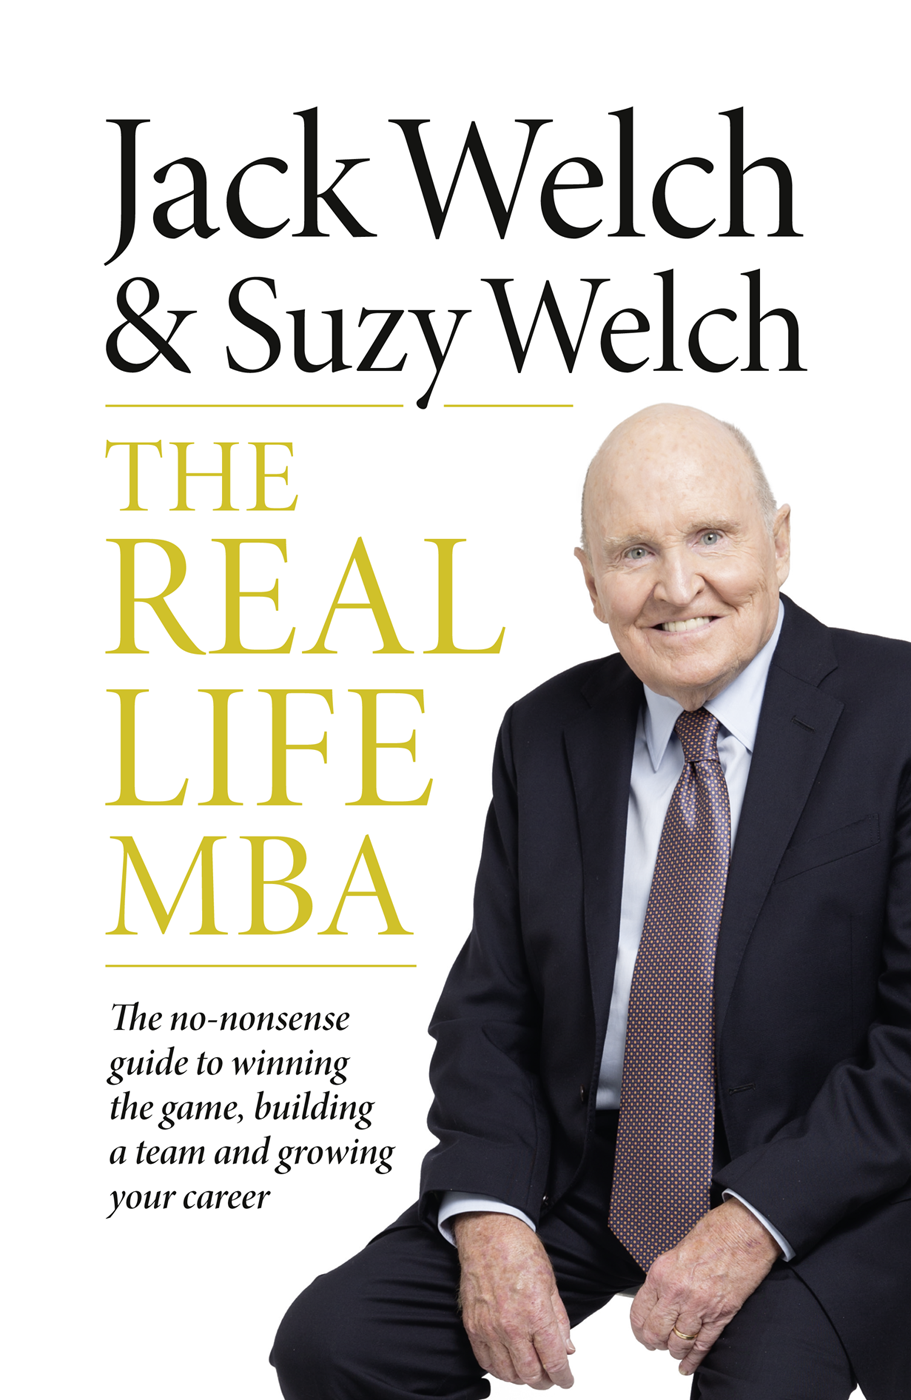 Suzy Welch The Real-Life MBA: The no-nonsense guide to winning the game, building a team and growing your career